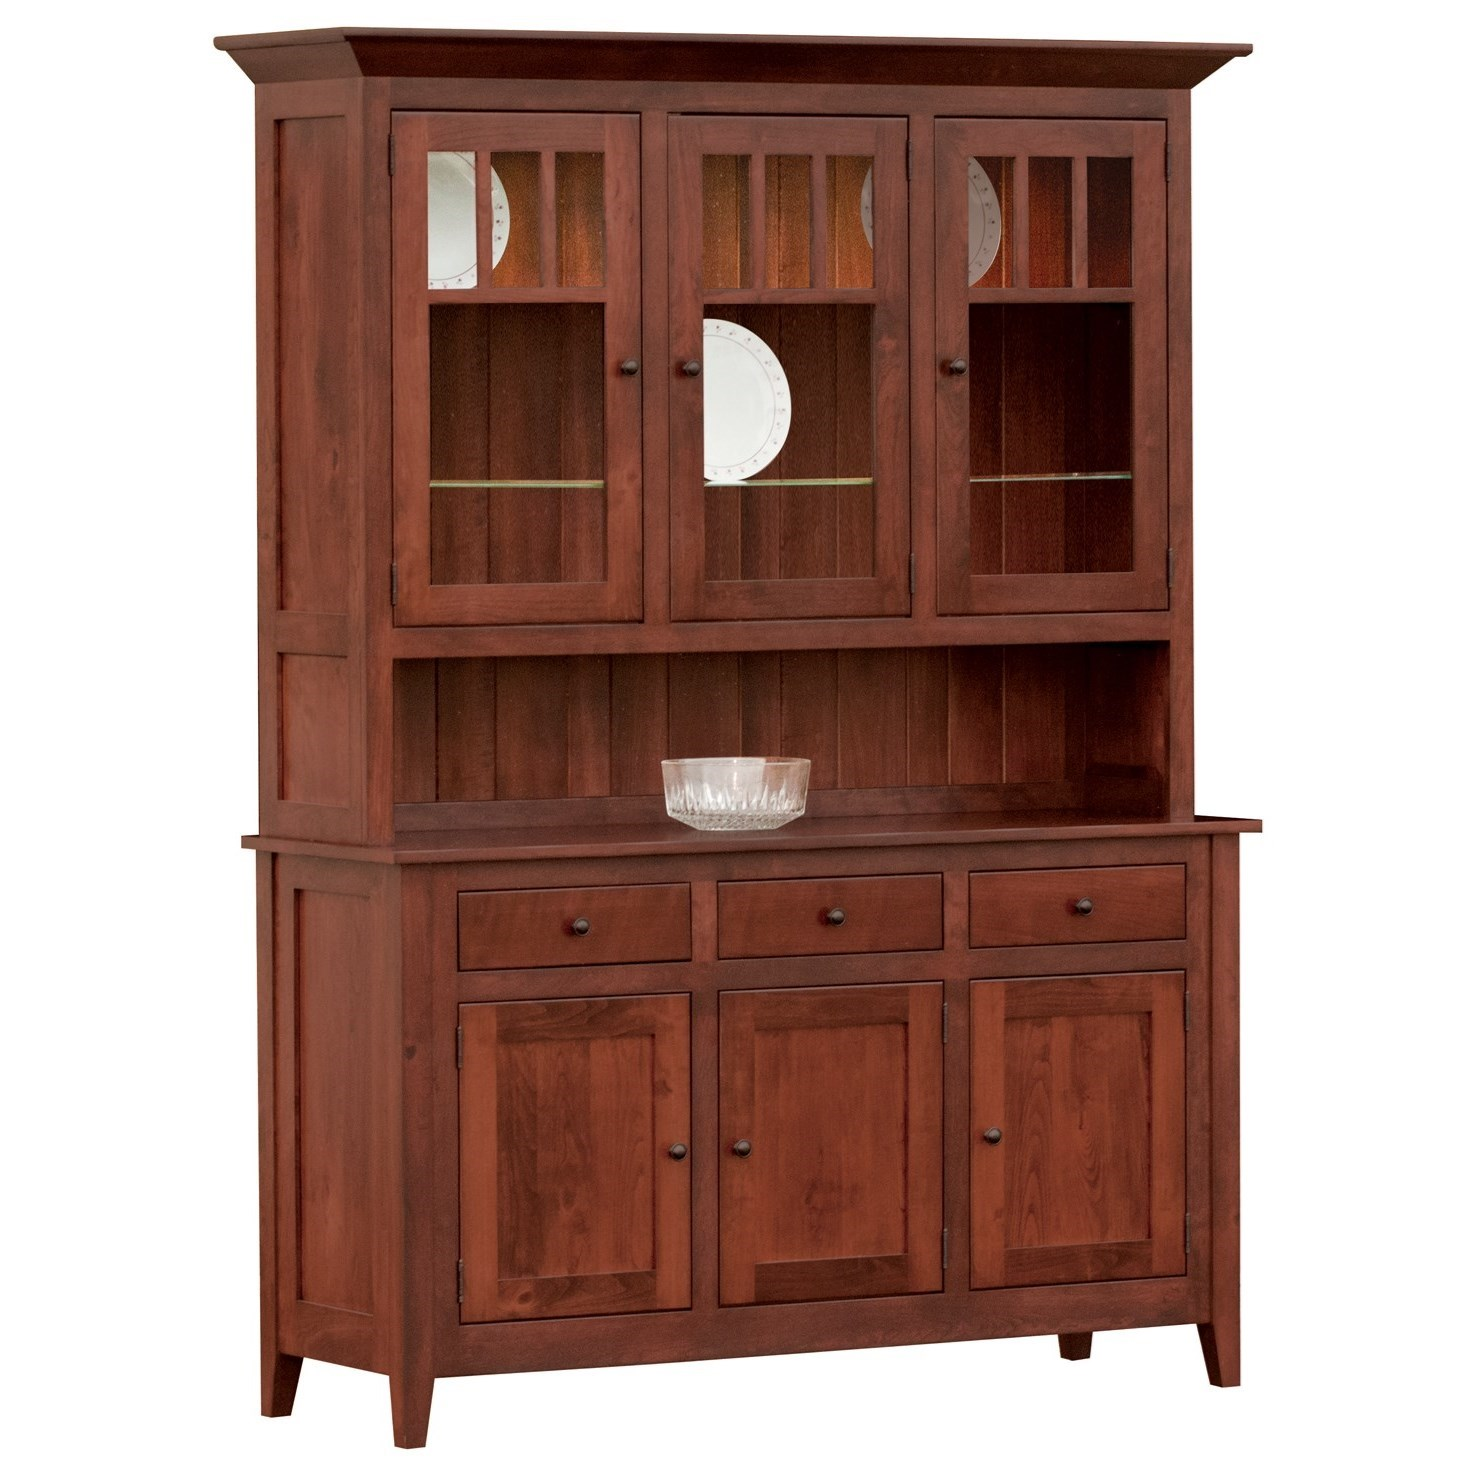 Larkspur Buffet with Hutch by Meadow Lane Wood at Saugerties Furniture Mart